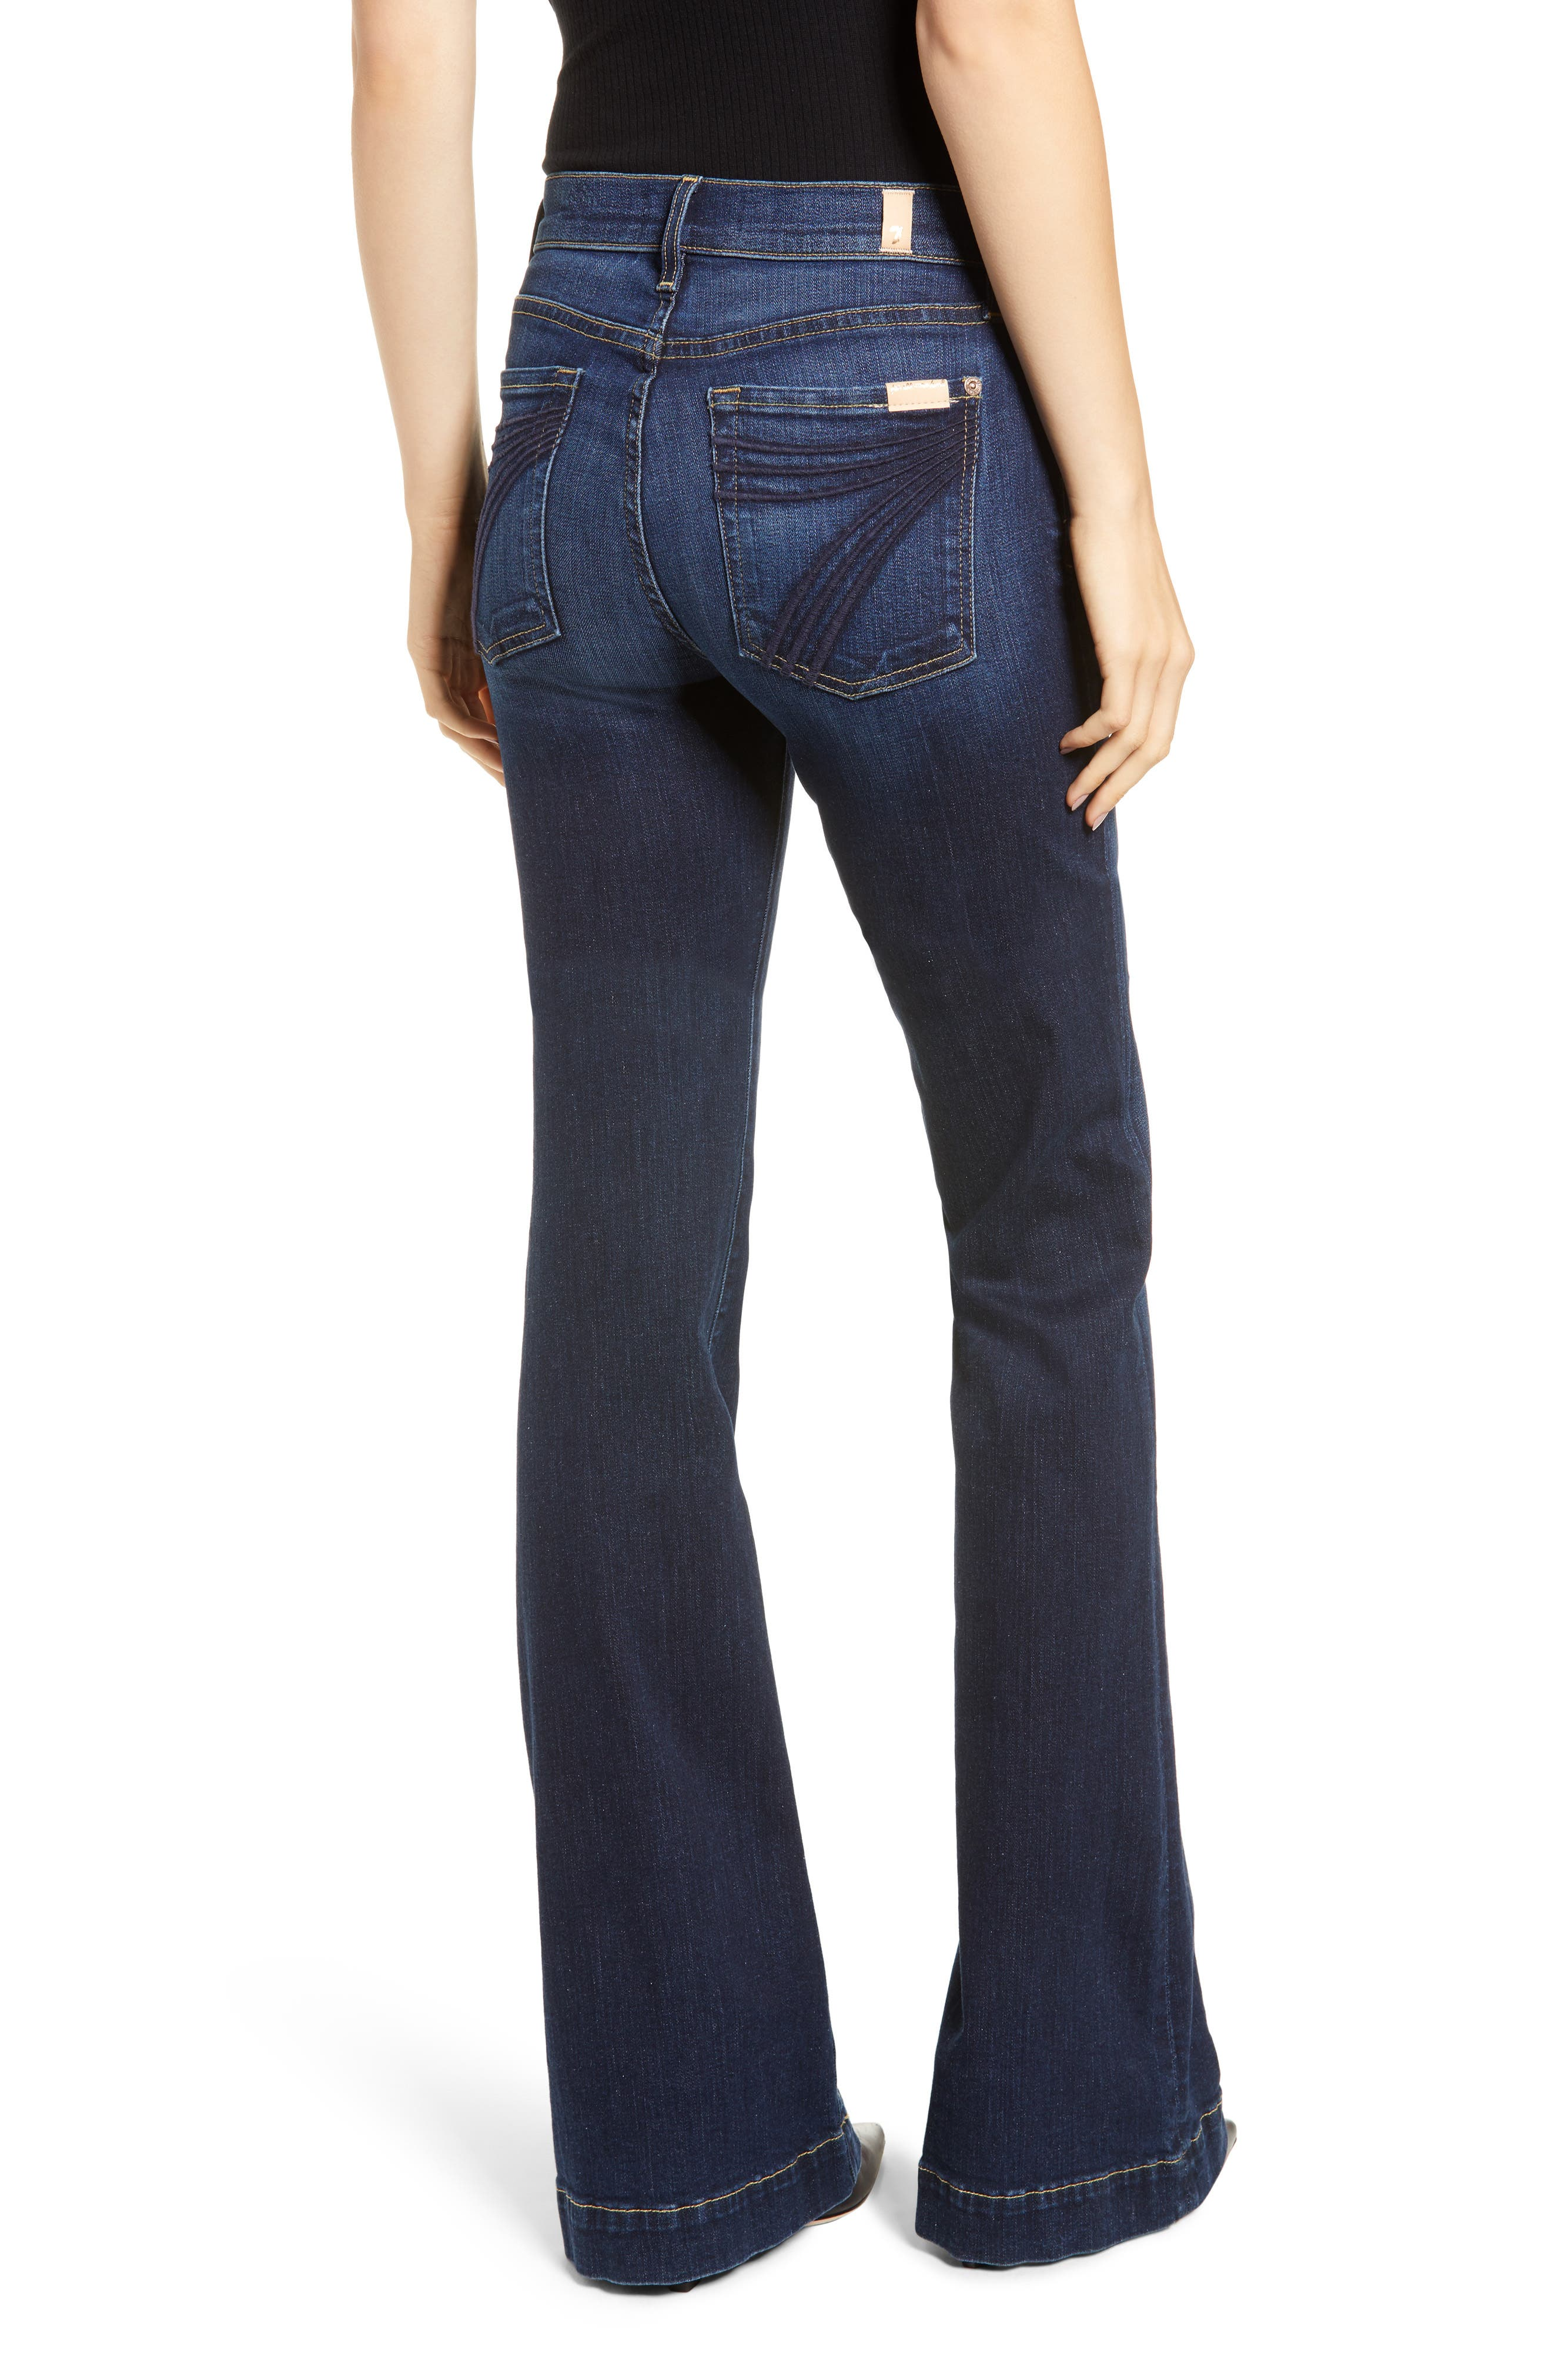 7 FOR ALL MANKIND<SUP>®</SUP>, Dojo Wide Leg Jeans, Alternate thumbnail 2, color, AUTHENTIC FATE